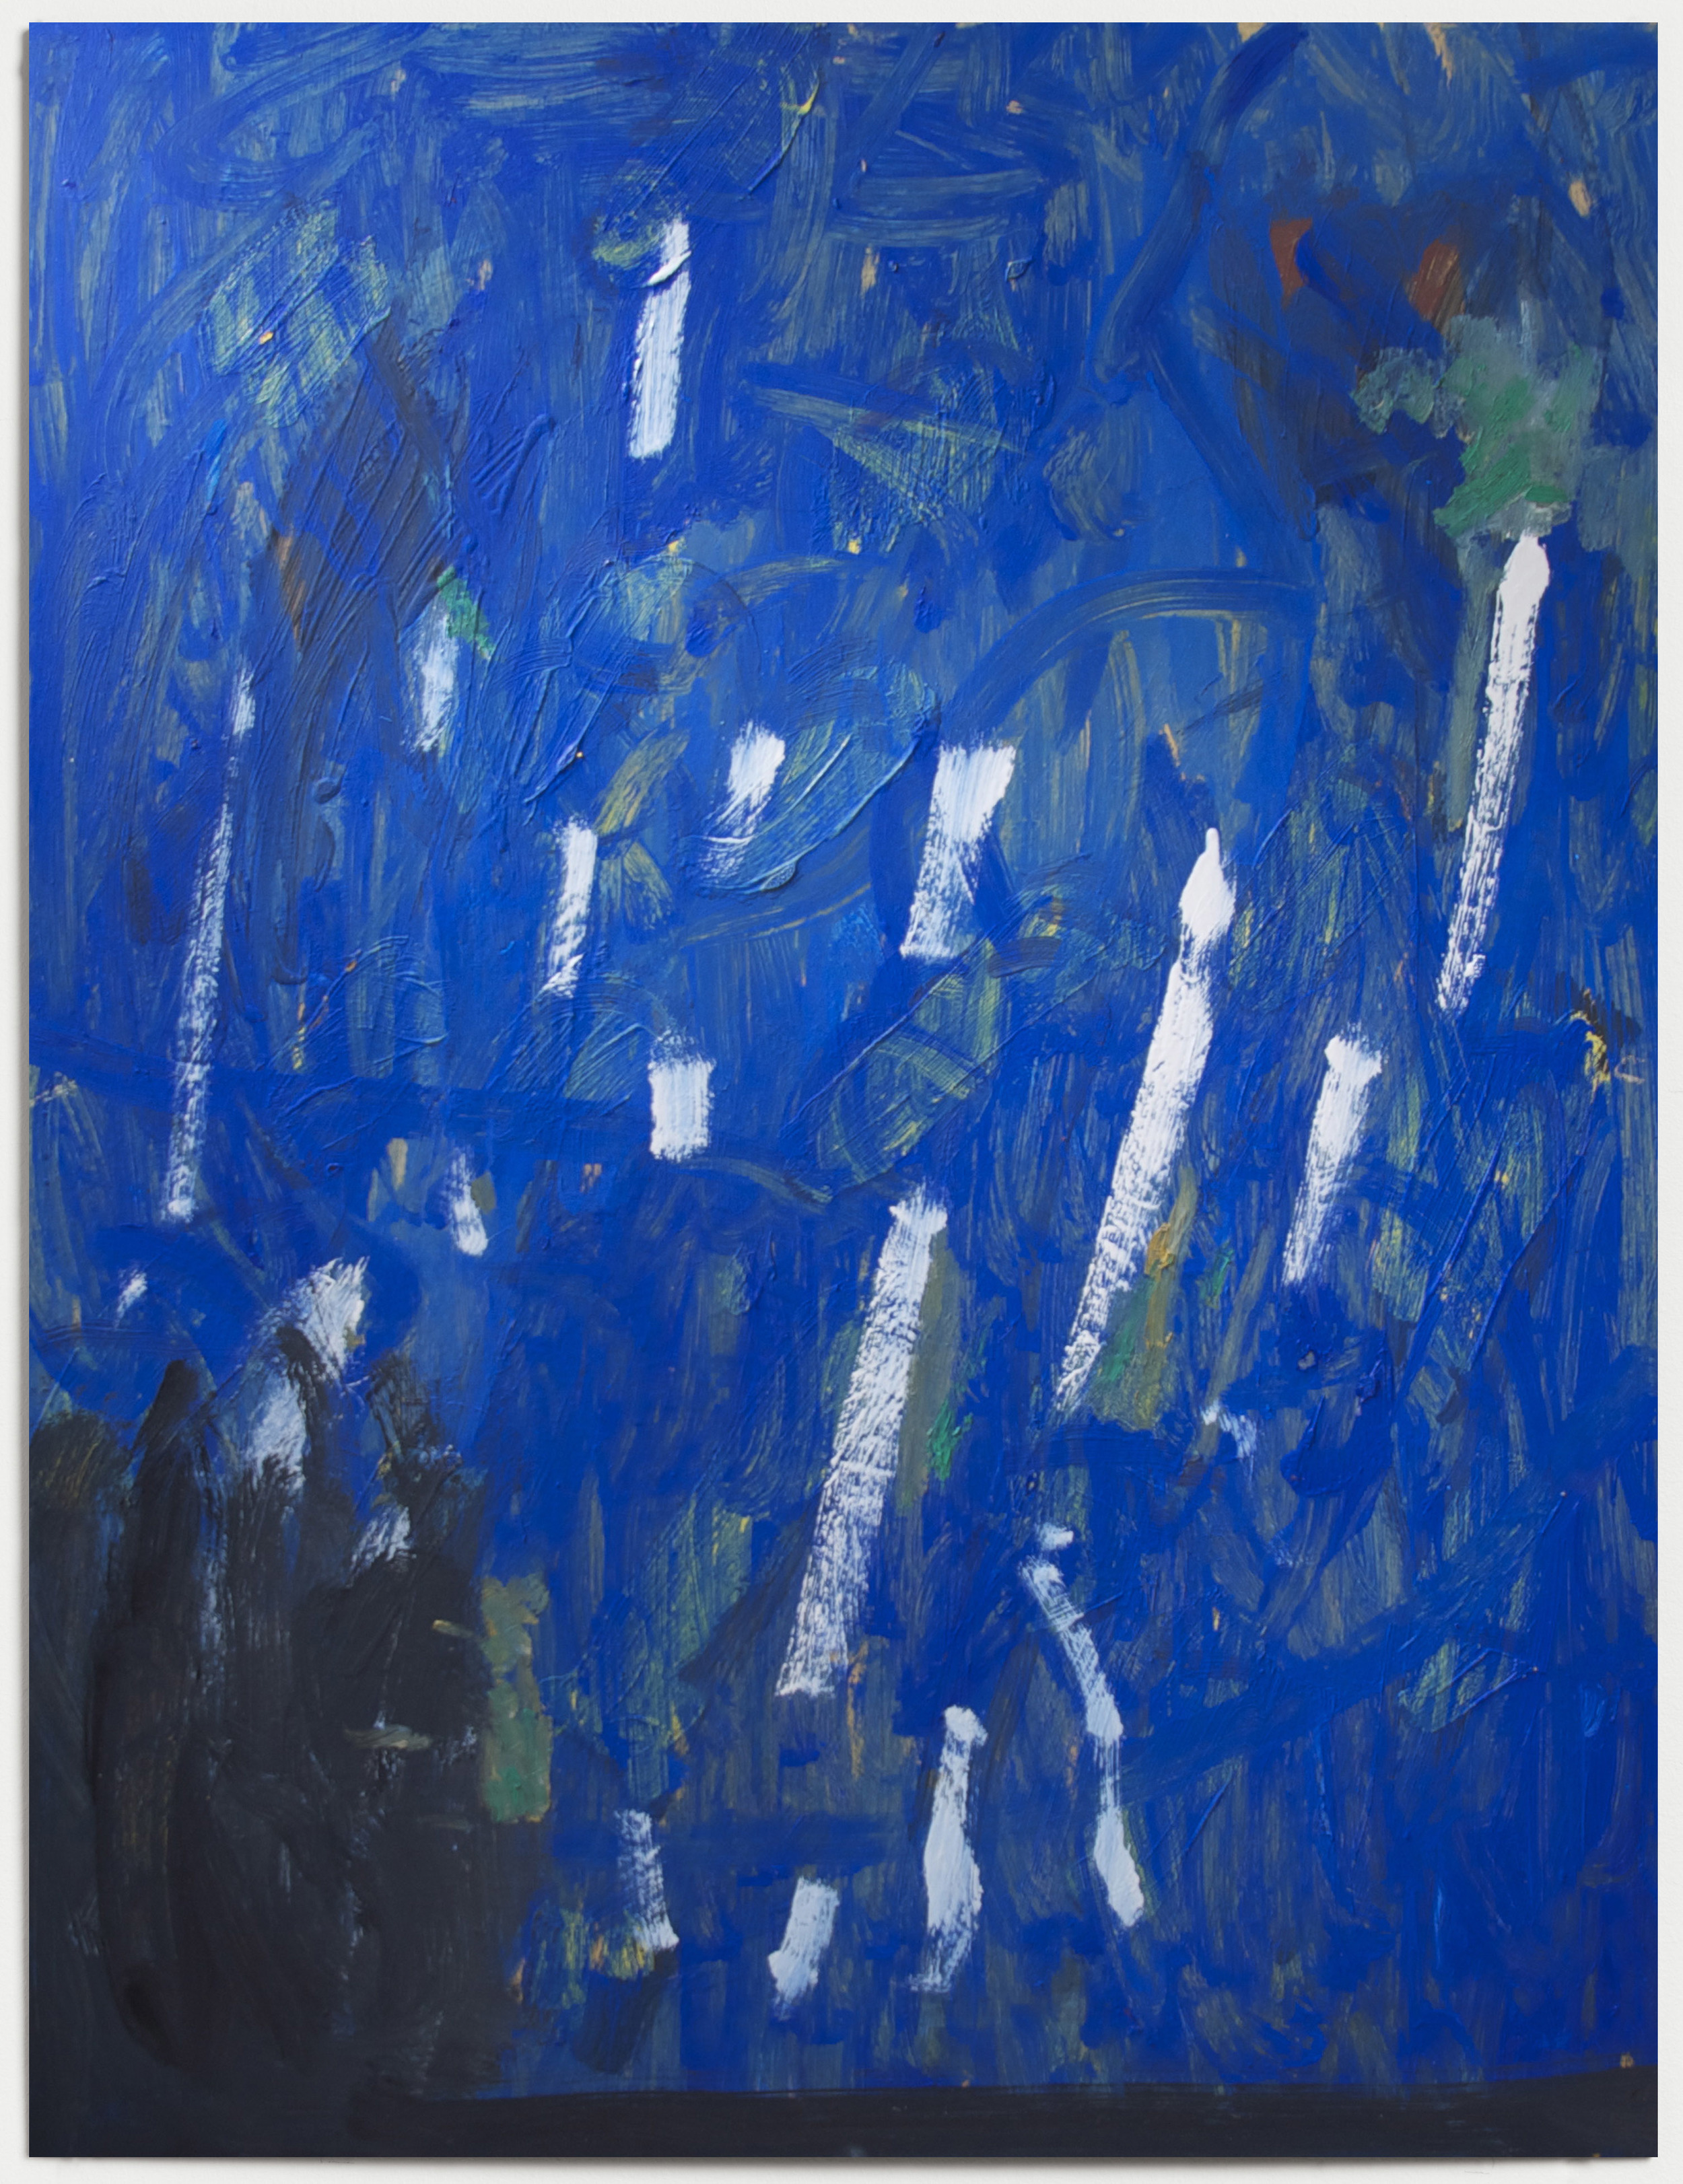 Blue Lines  2015  Oil on board  80 x 60cm framed  Private Collection, NZ